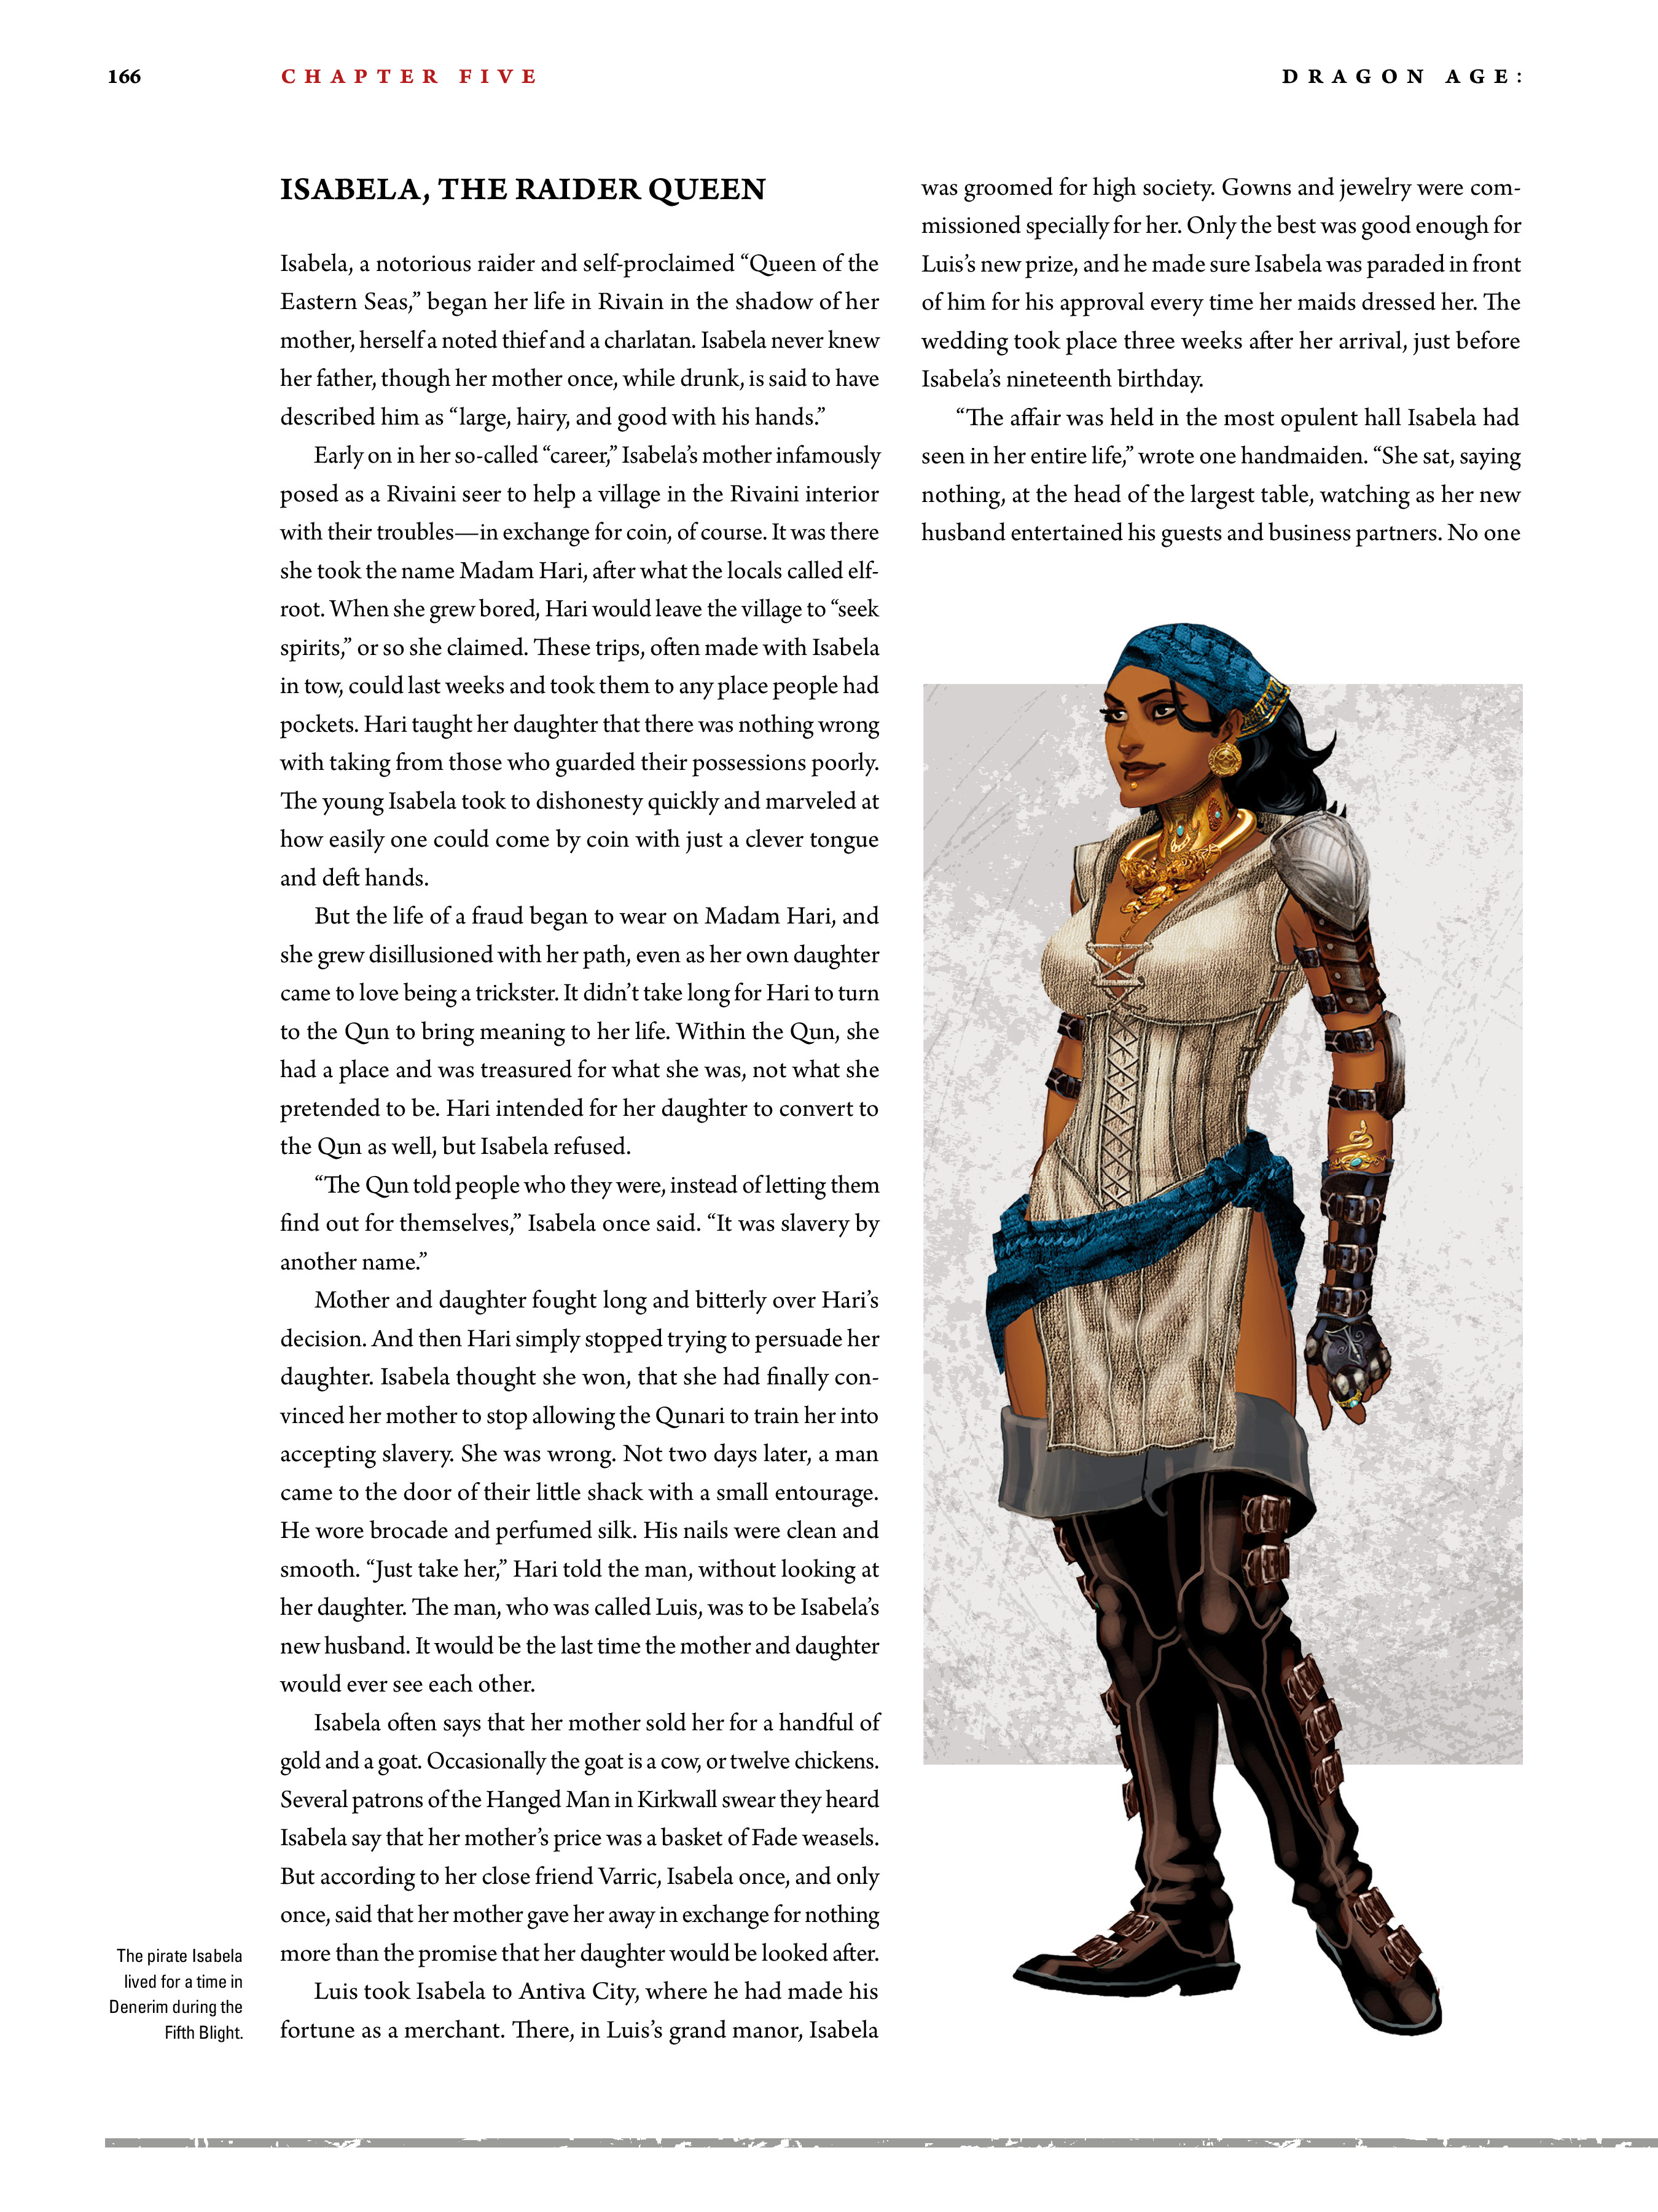 Read online Dragon Age: The World of Thedas comic -  Issue # TPB 2 - 161